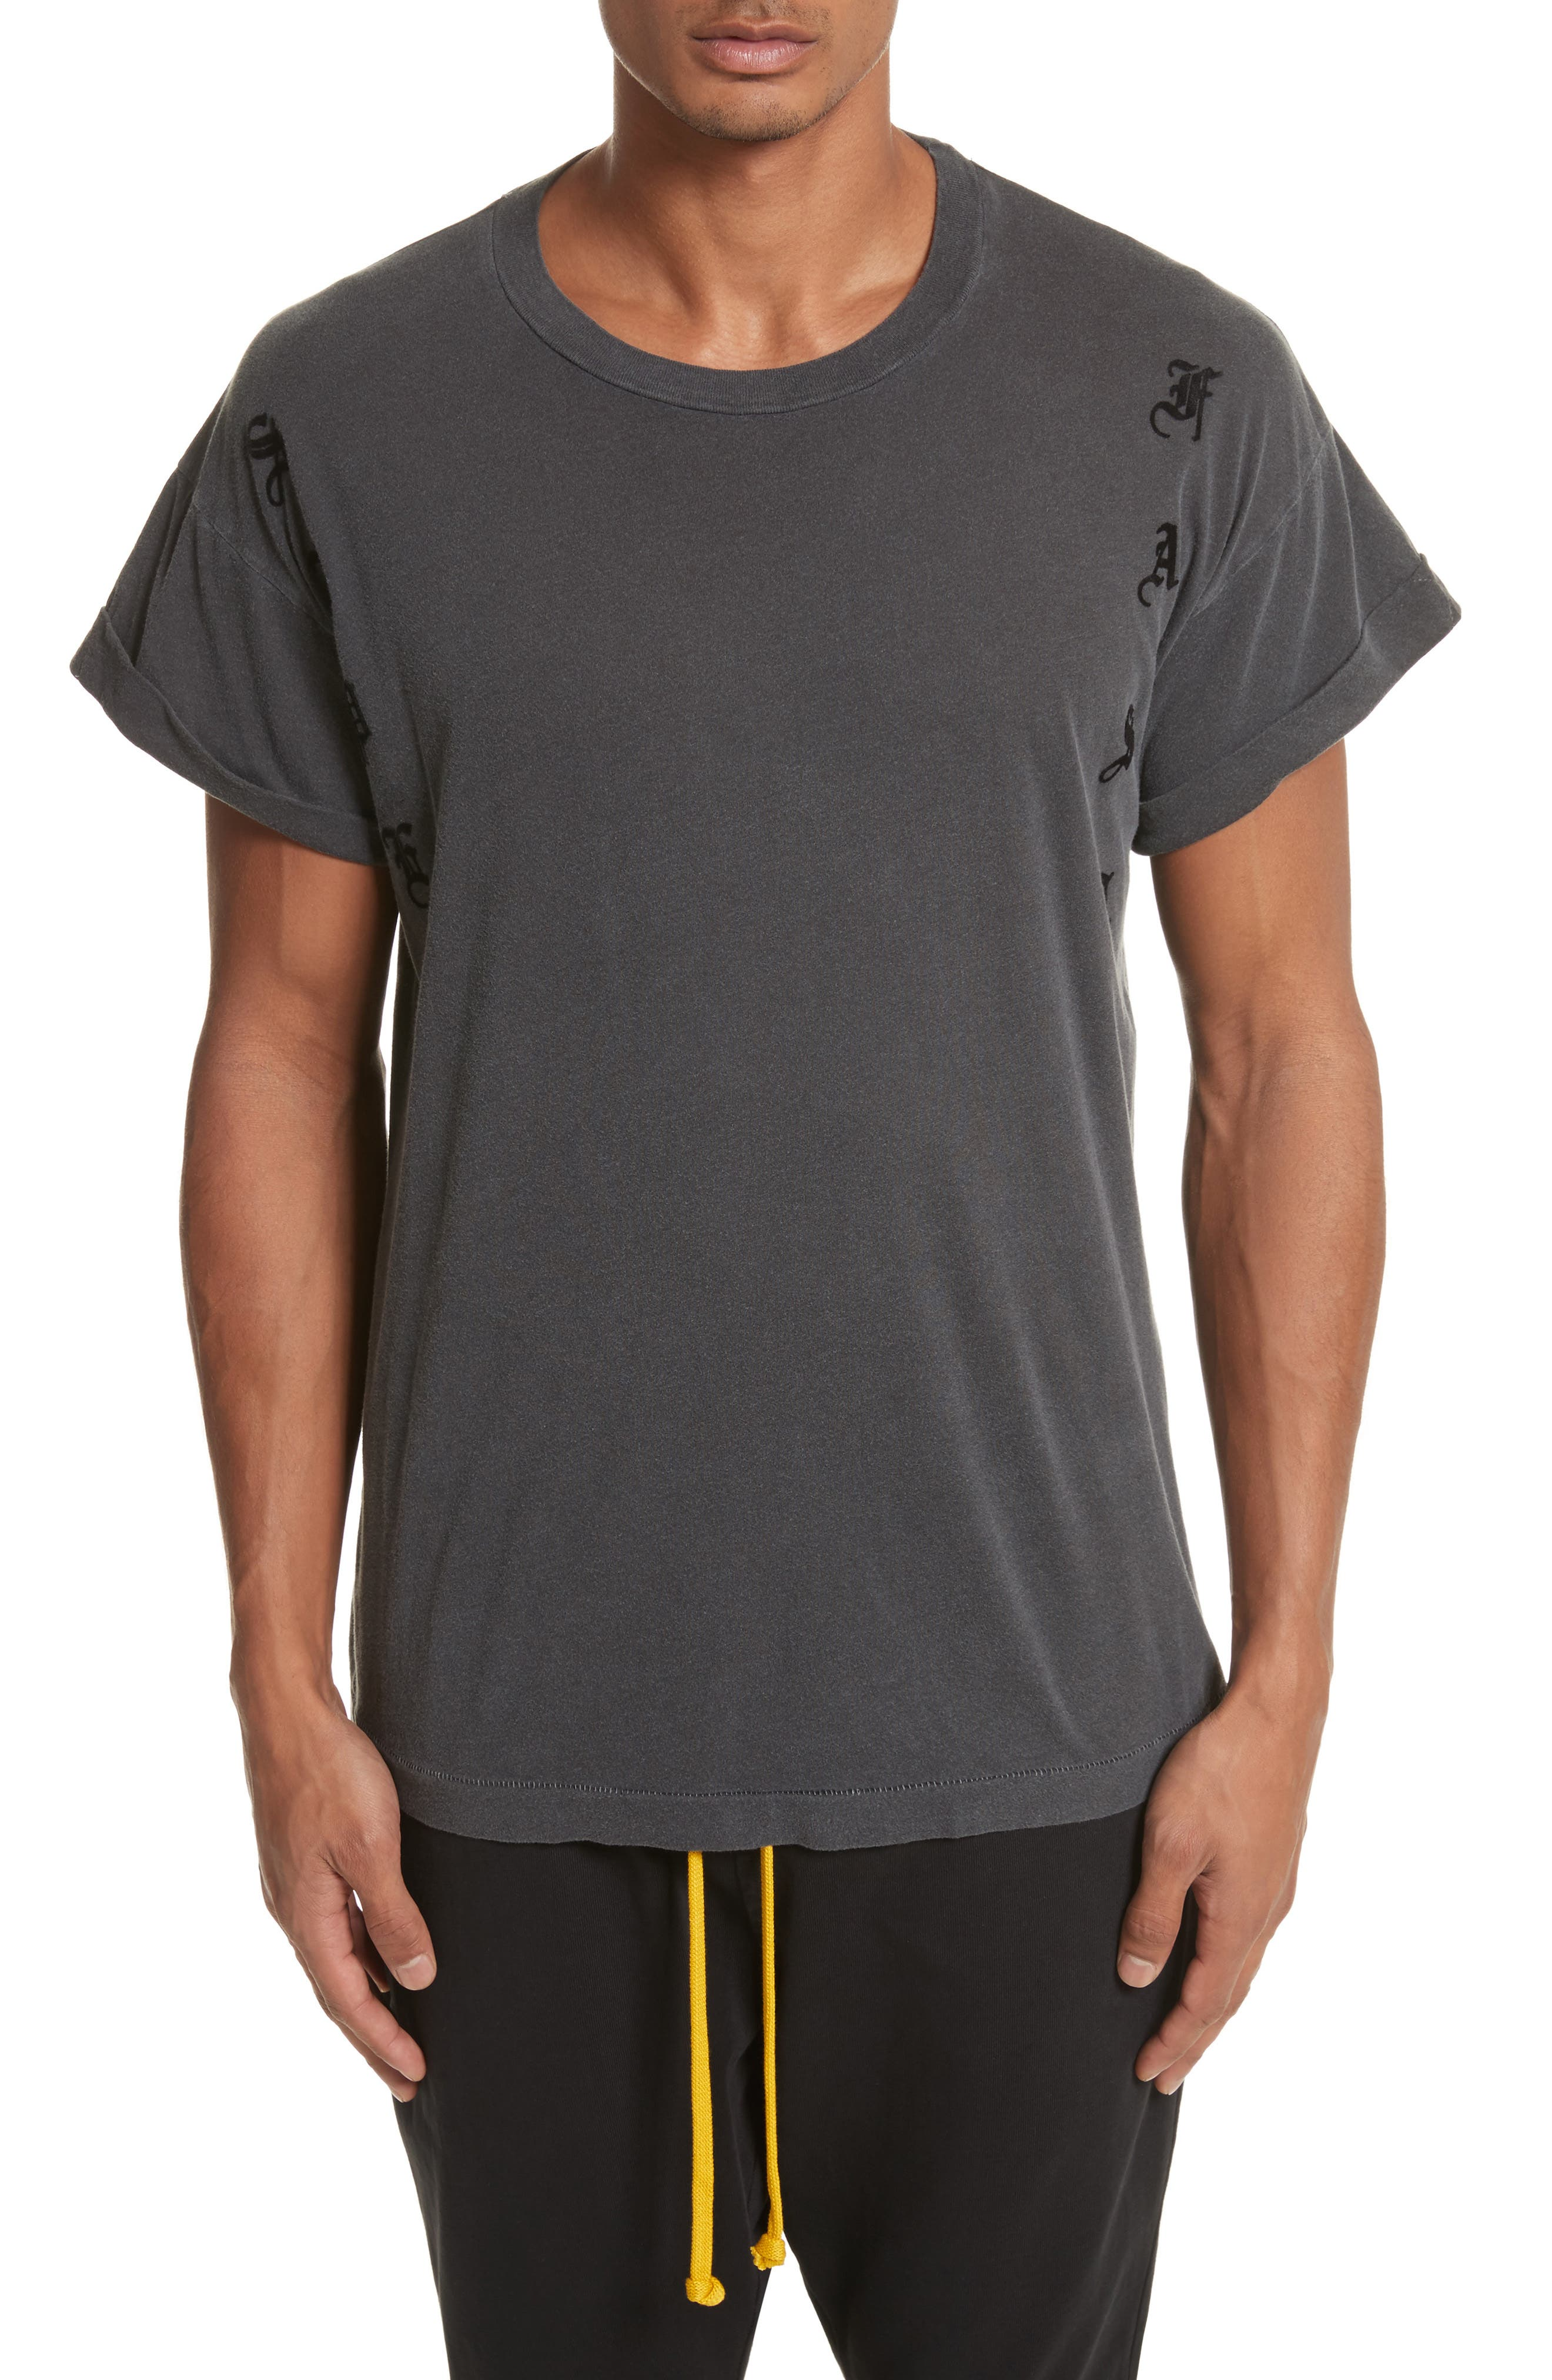 Abassi Embroidered T-Shirt,                             Main thumbnail 1, color,                             Blk Pigment